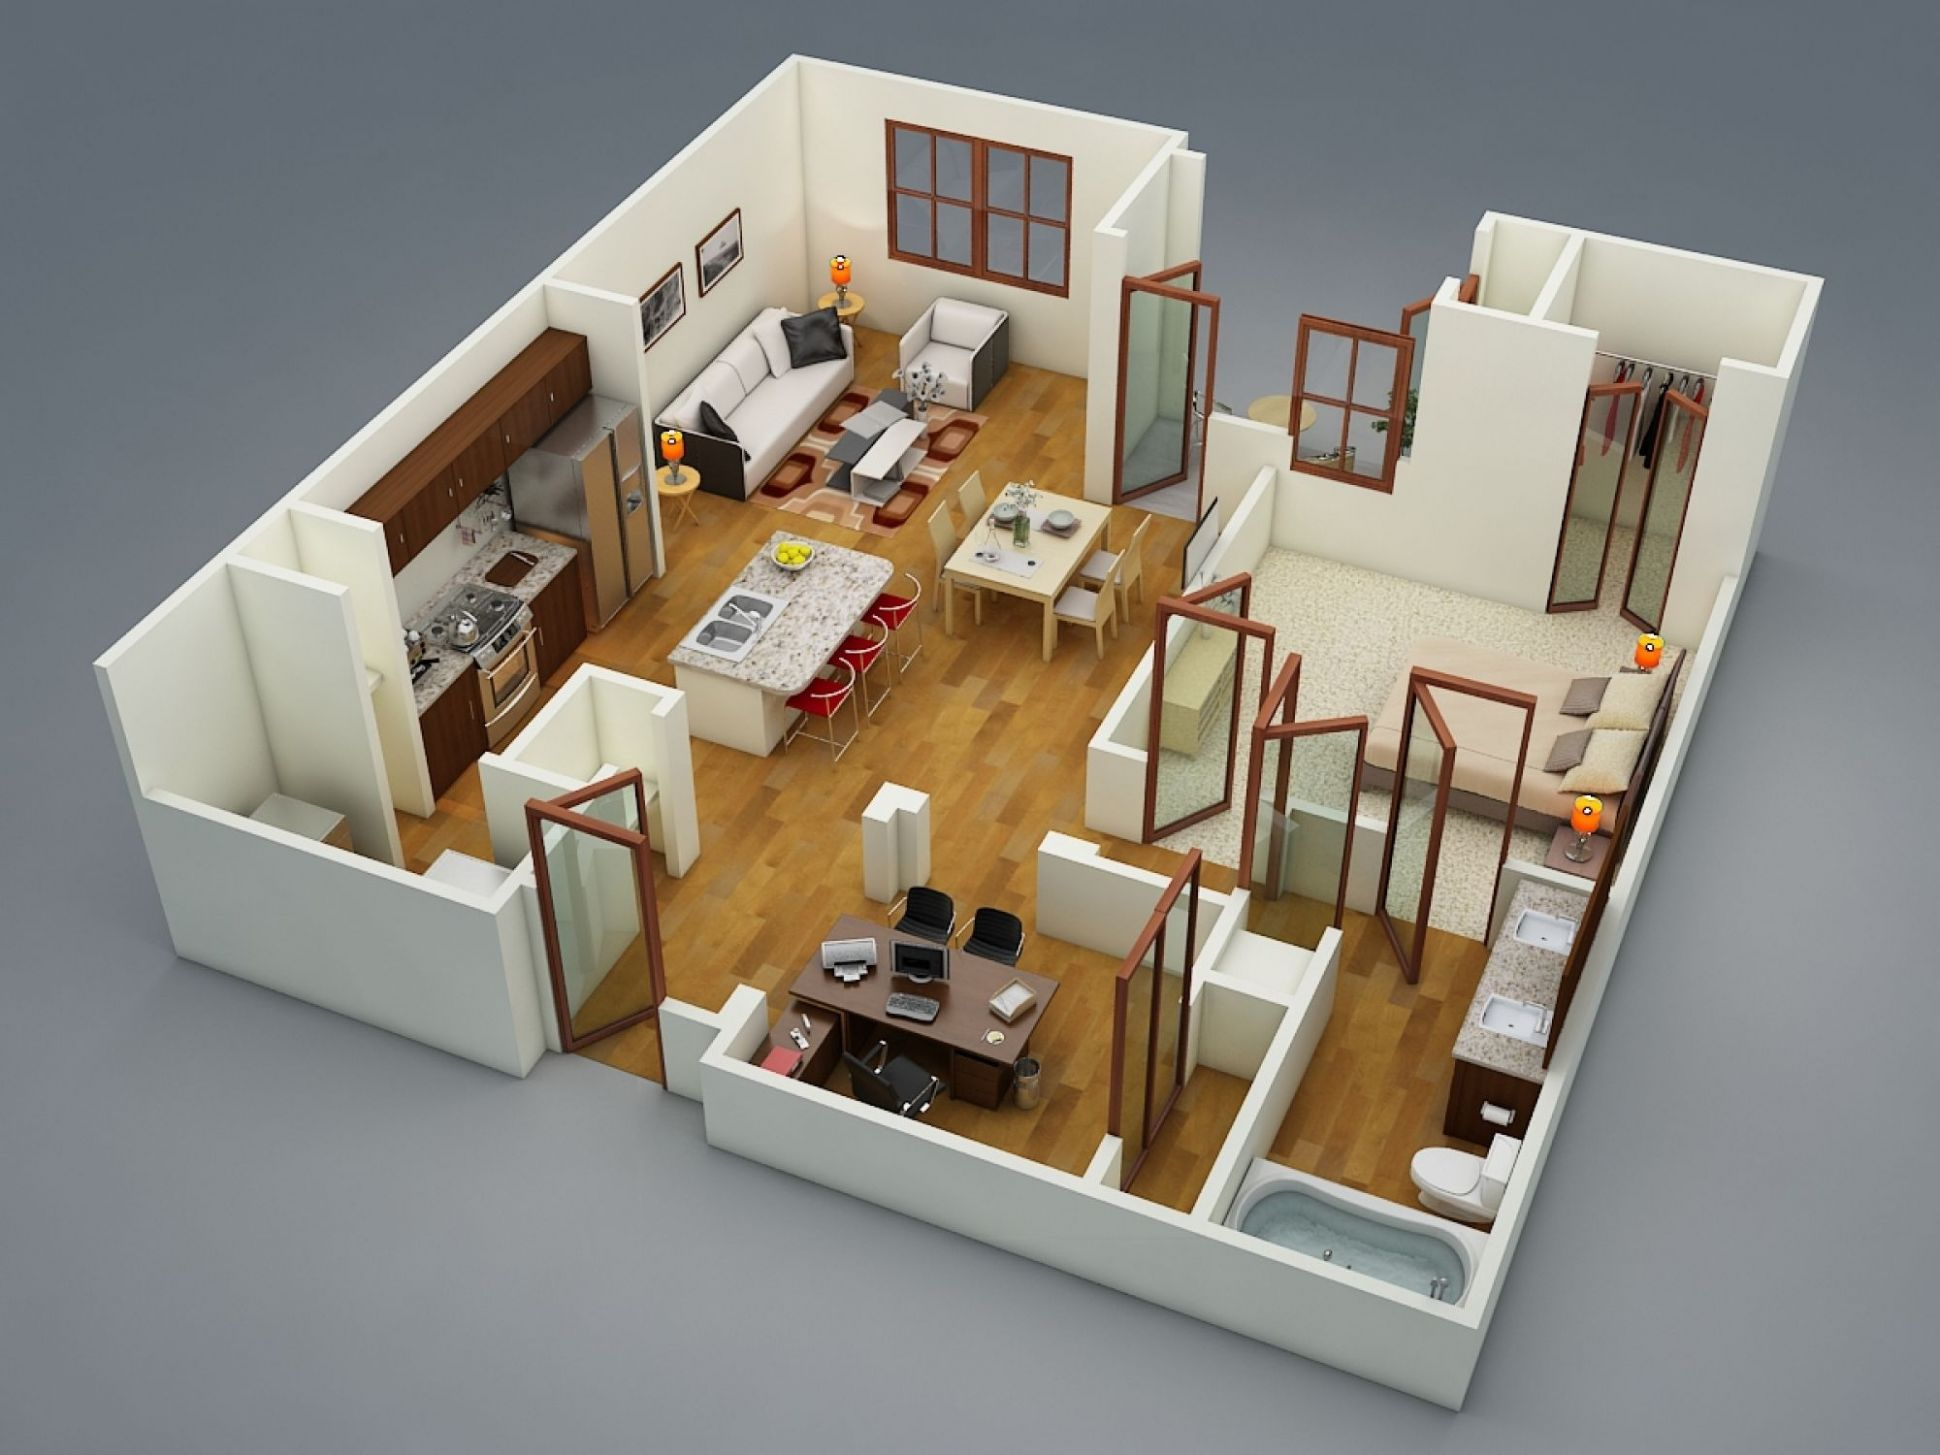 11 Bedroom Apartment/House Plans - apartment design house